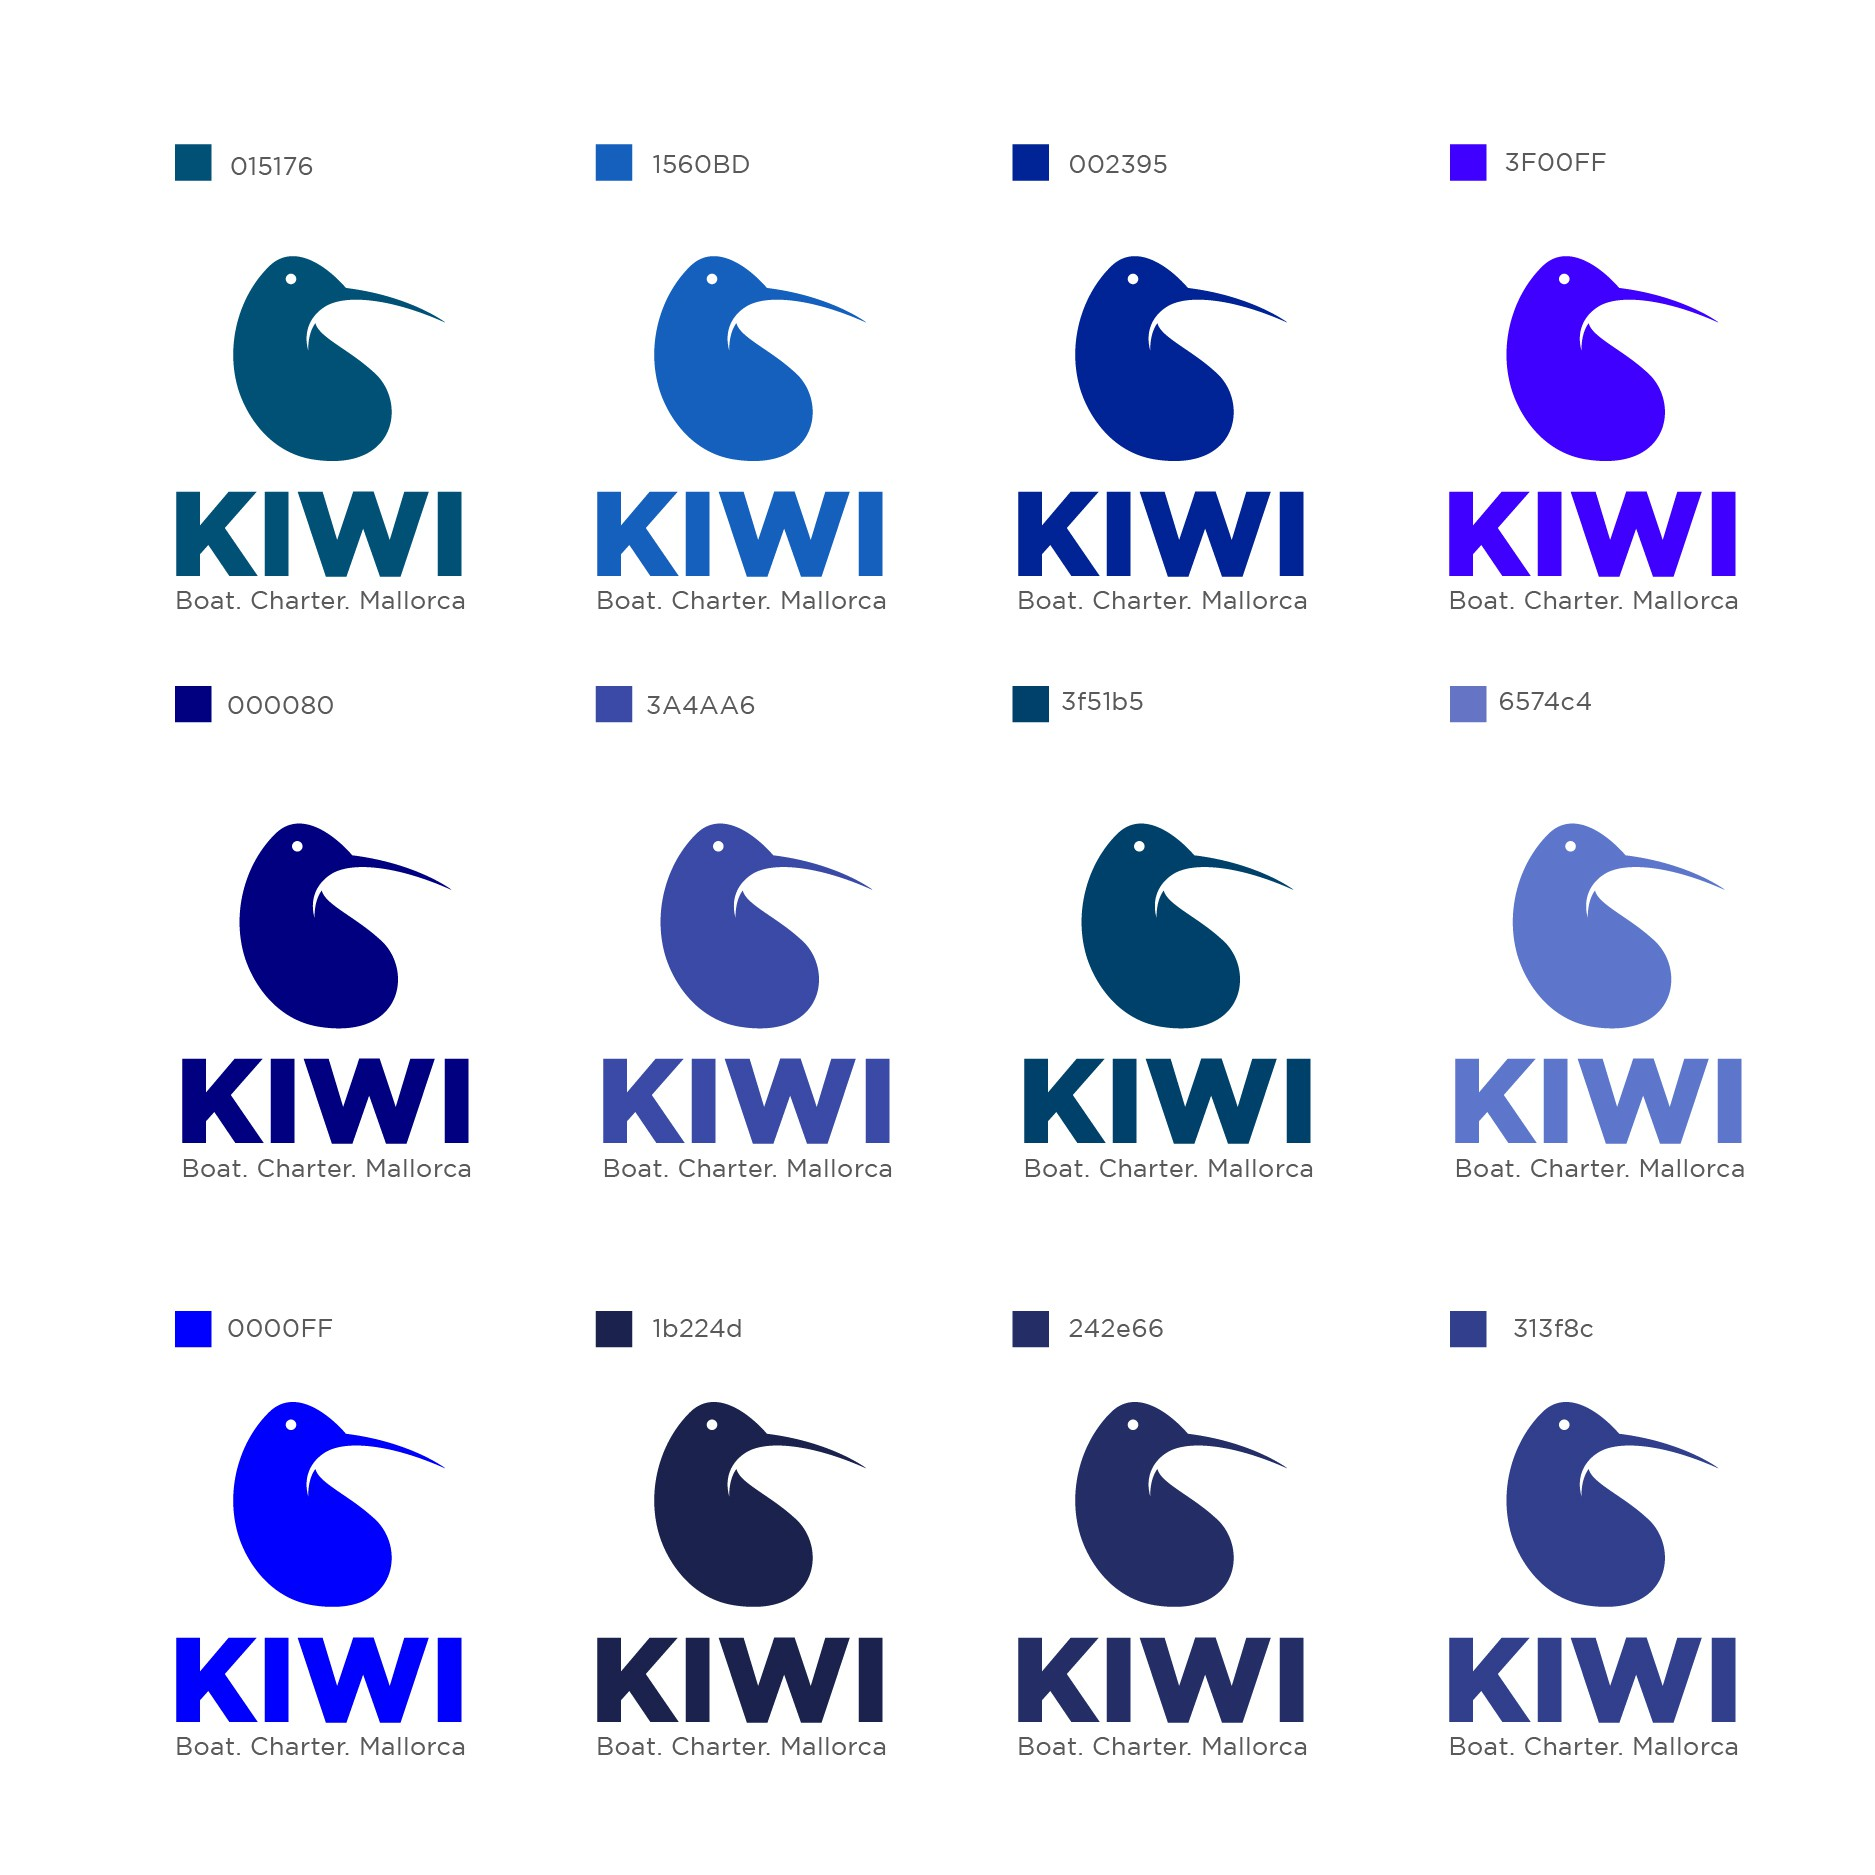 Kiwi a Boat Charter Agency is searching for an new Visual Brand